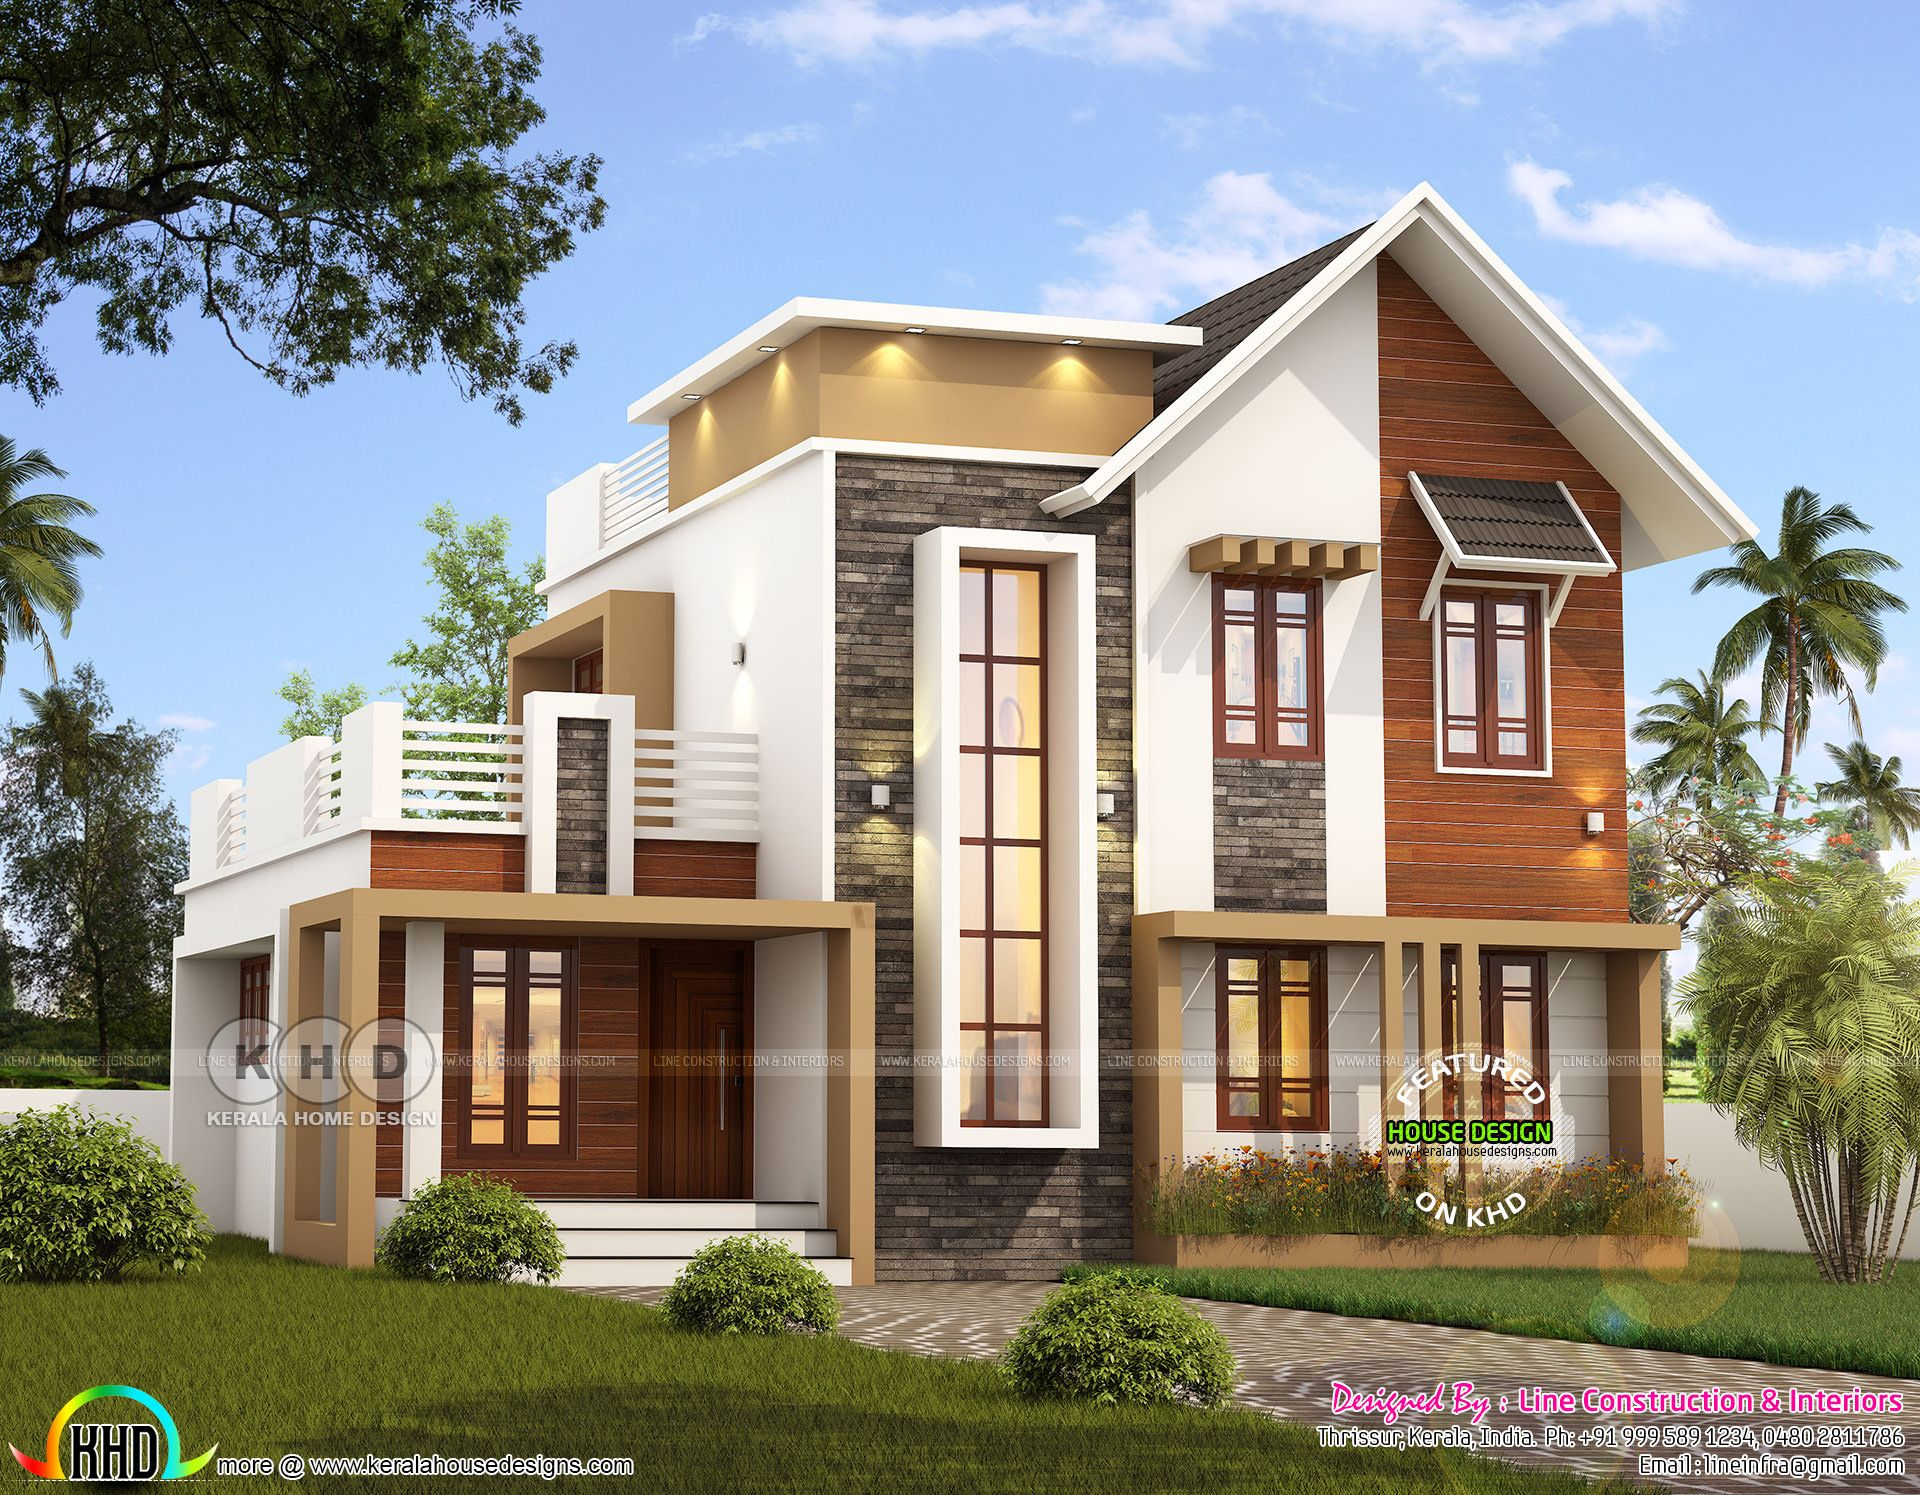 1742 Square Feet 4 Bedroom Mixed Roof Modern Home Kerala House Design Latest House Designs Model House Plan